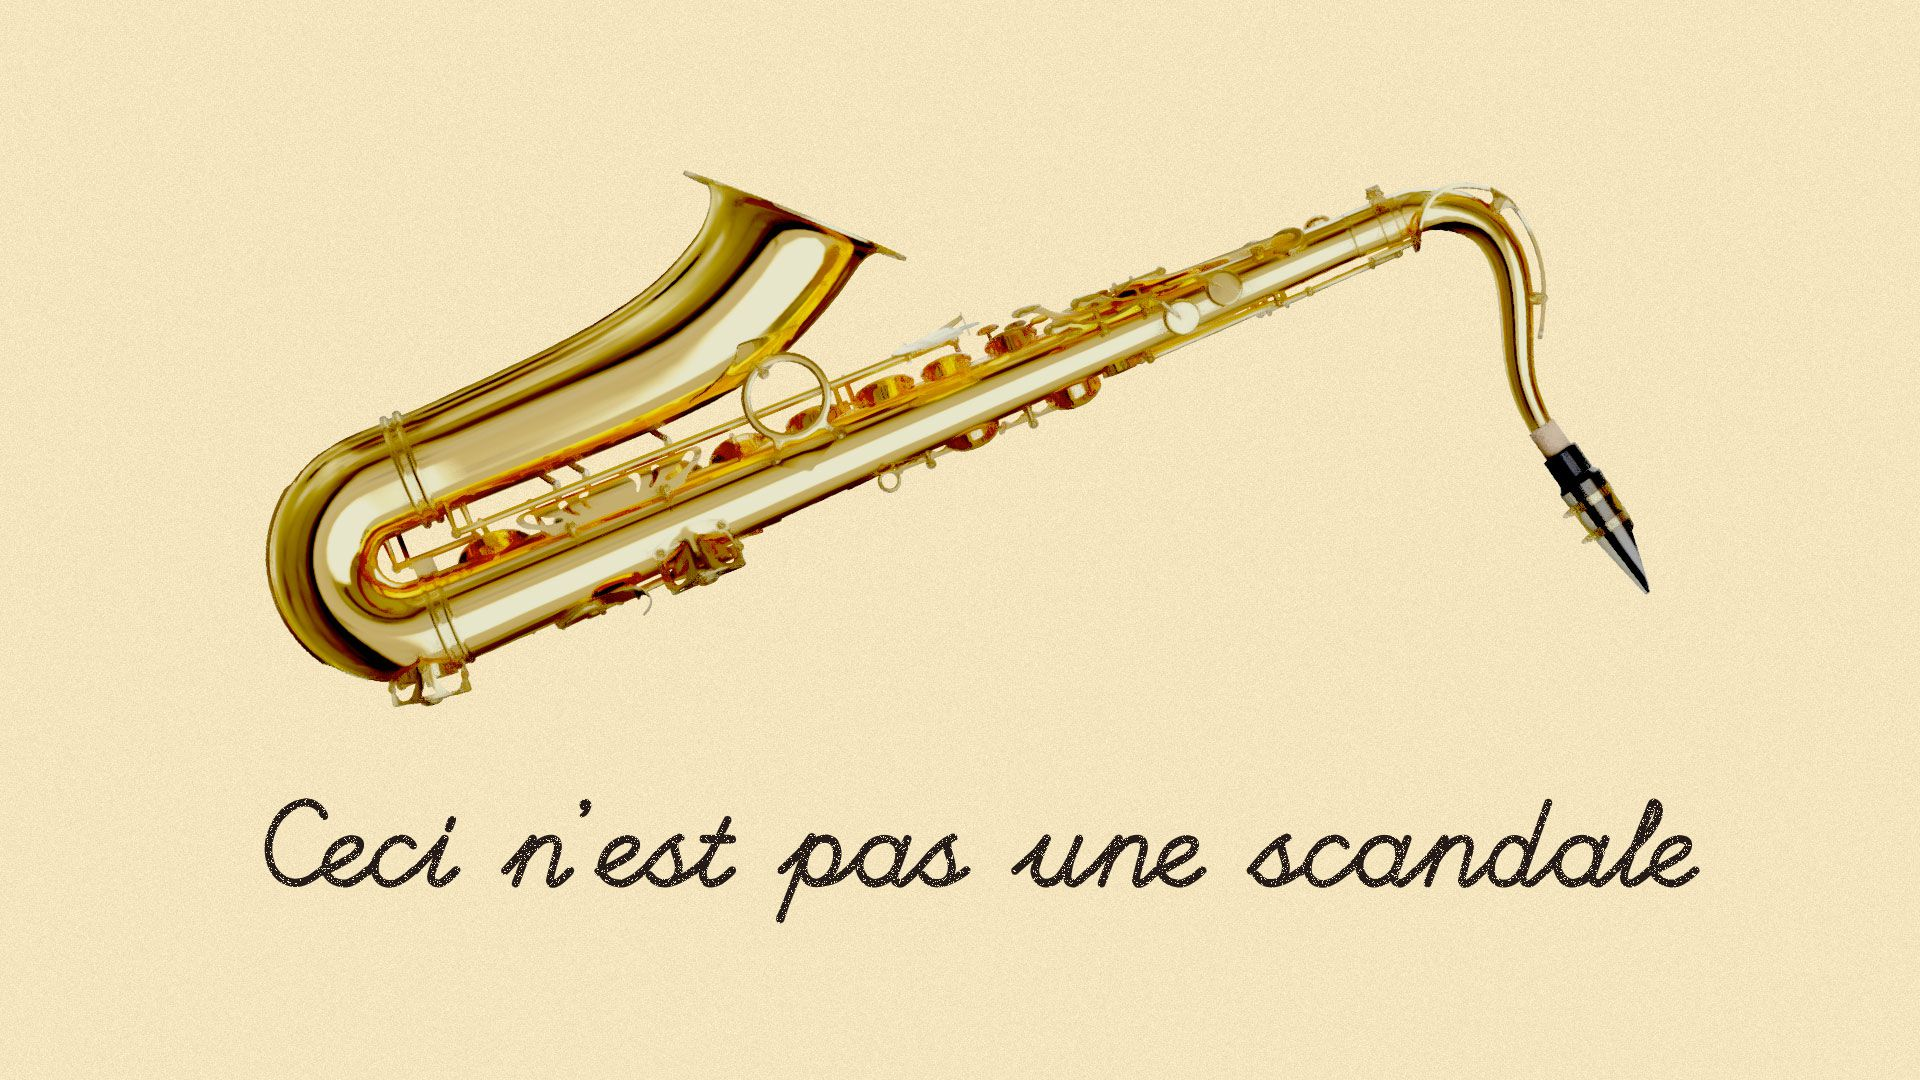 A spoof on a Rene Magritte painting showing a saxophone and reading 'Ceci n'est pas une scandale'